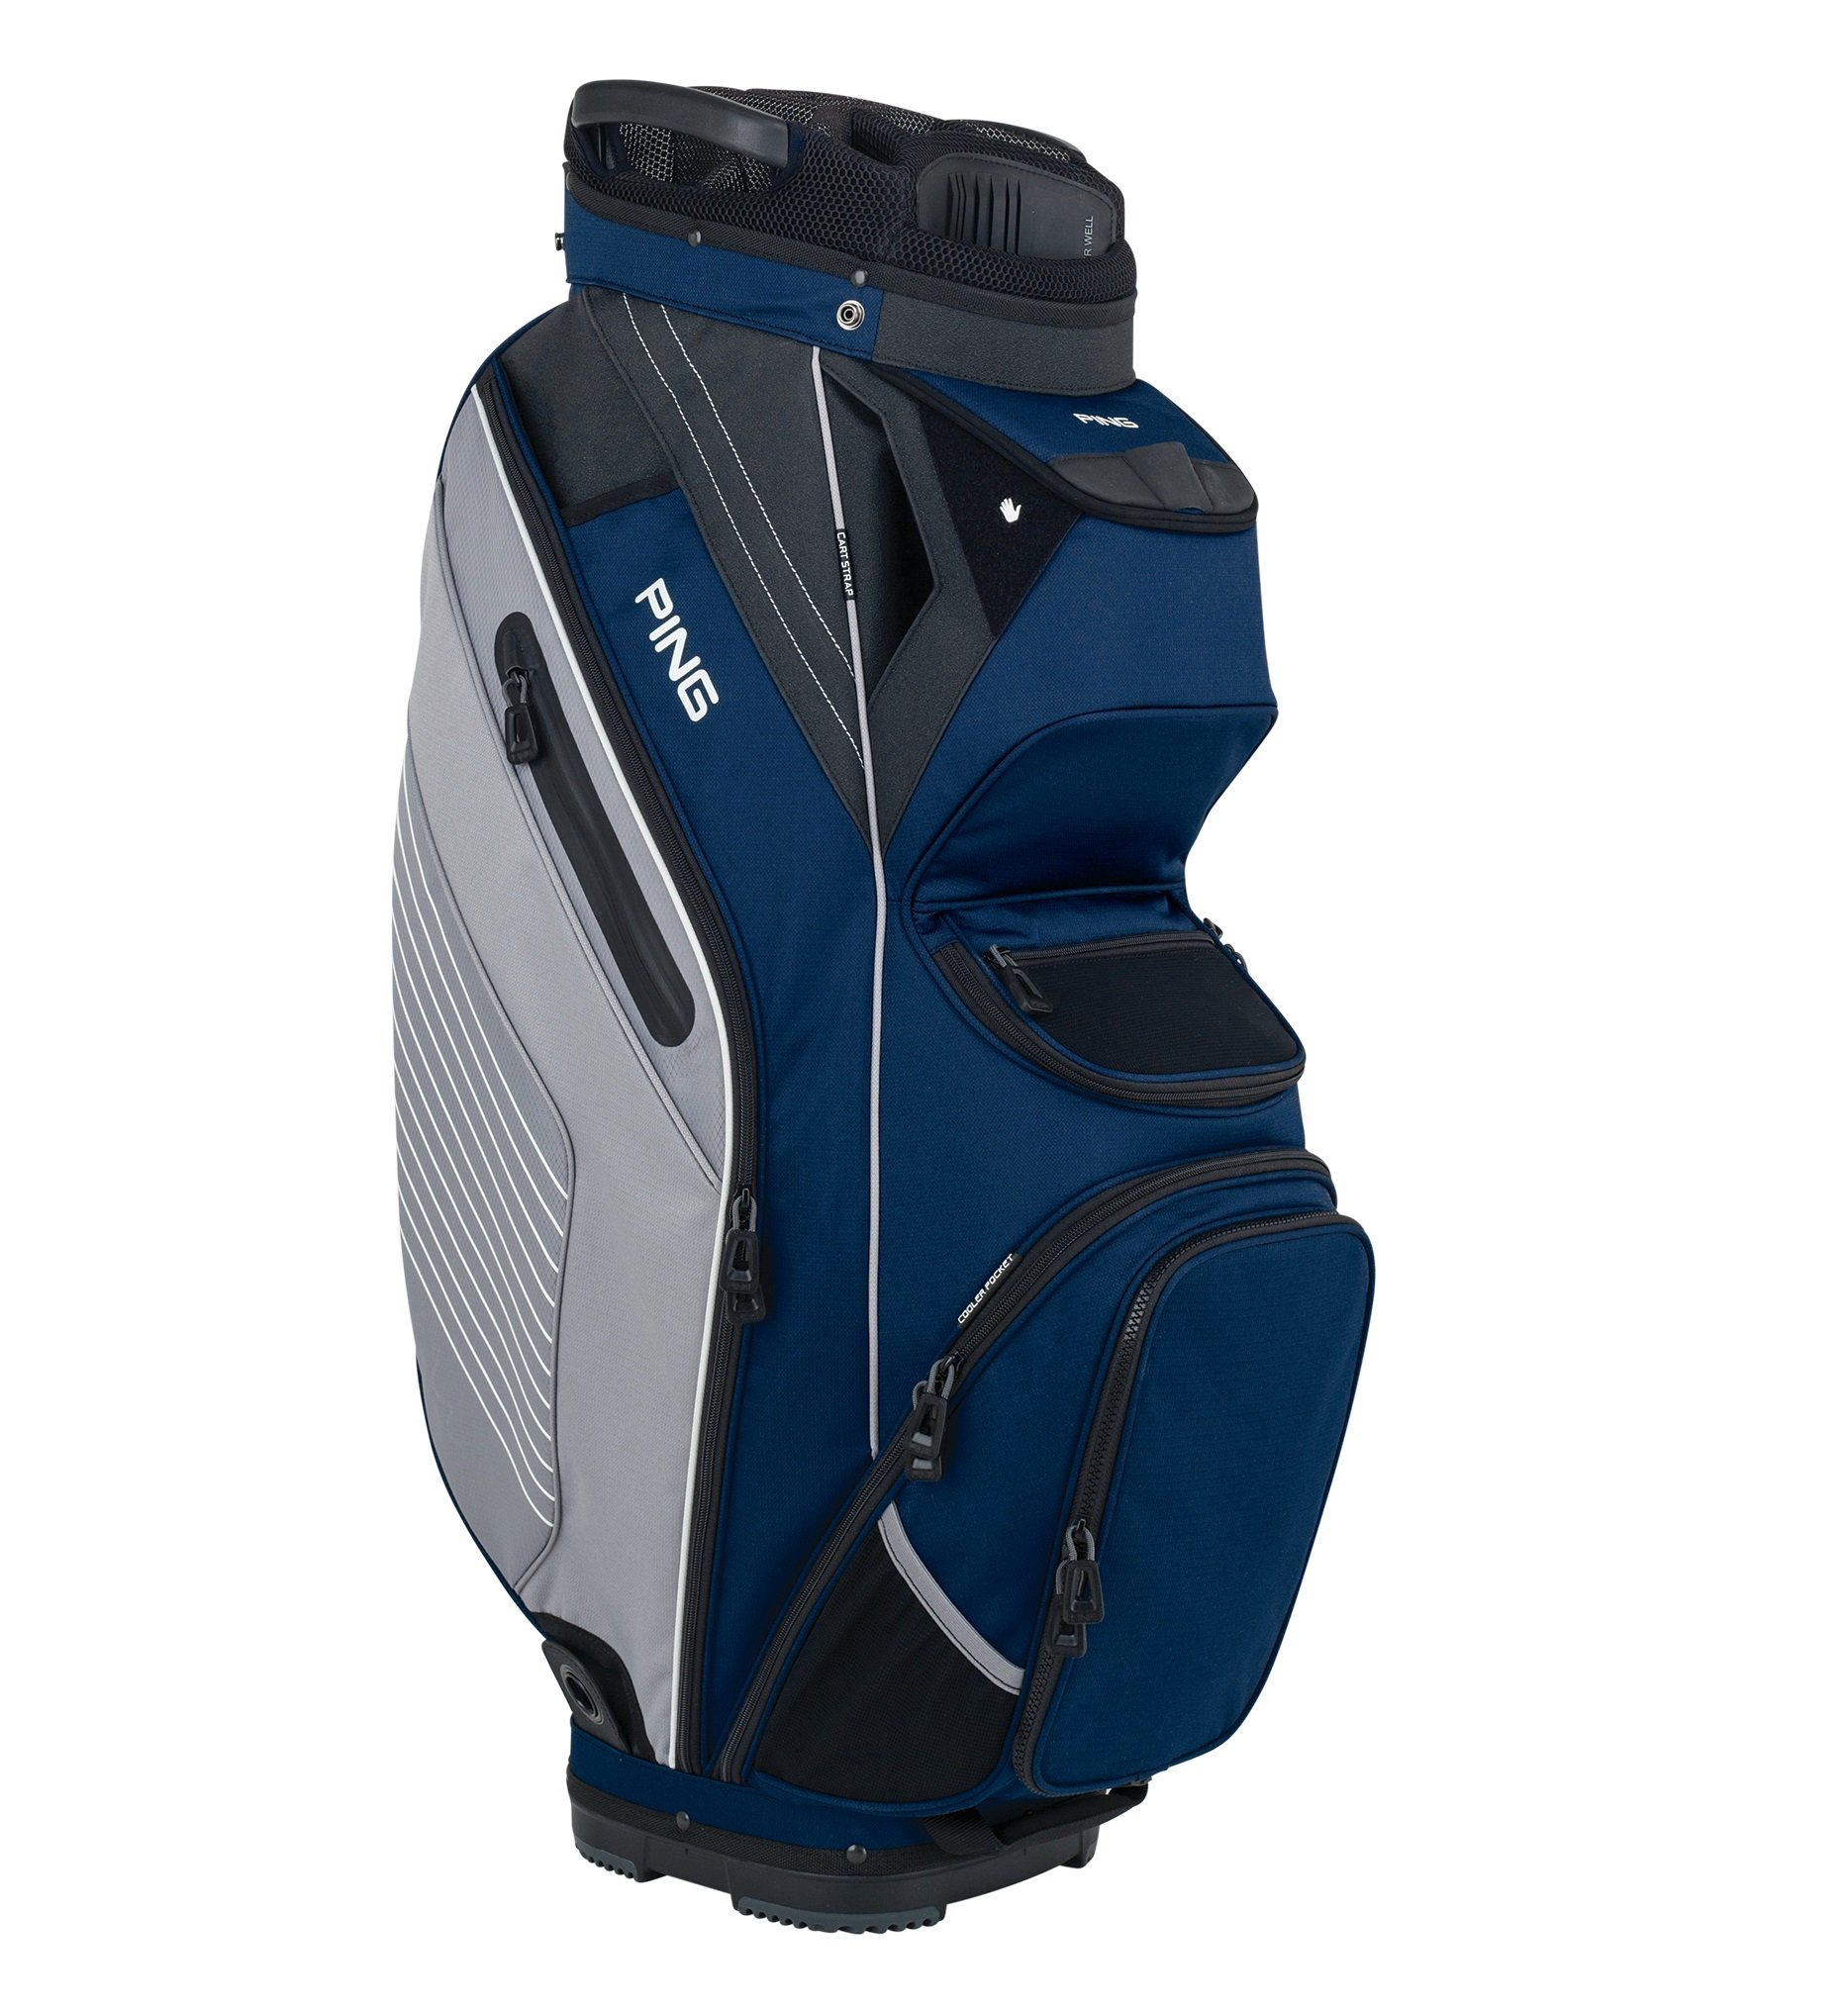 Ping Pioneer Cart Bag 2018 - 08 NAVY/SILVER